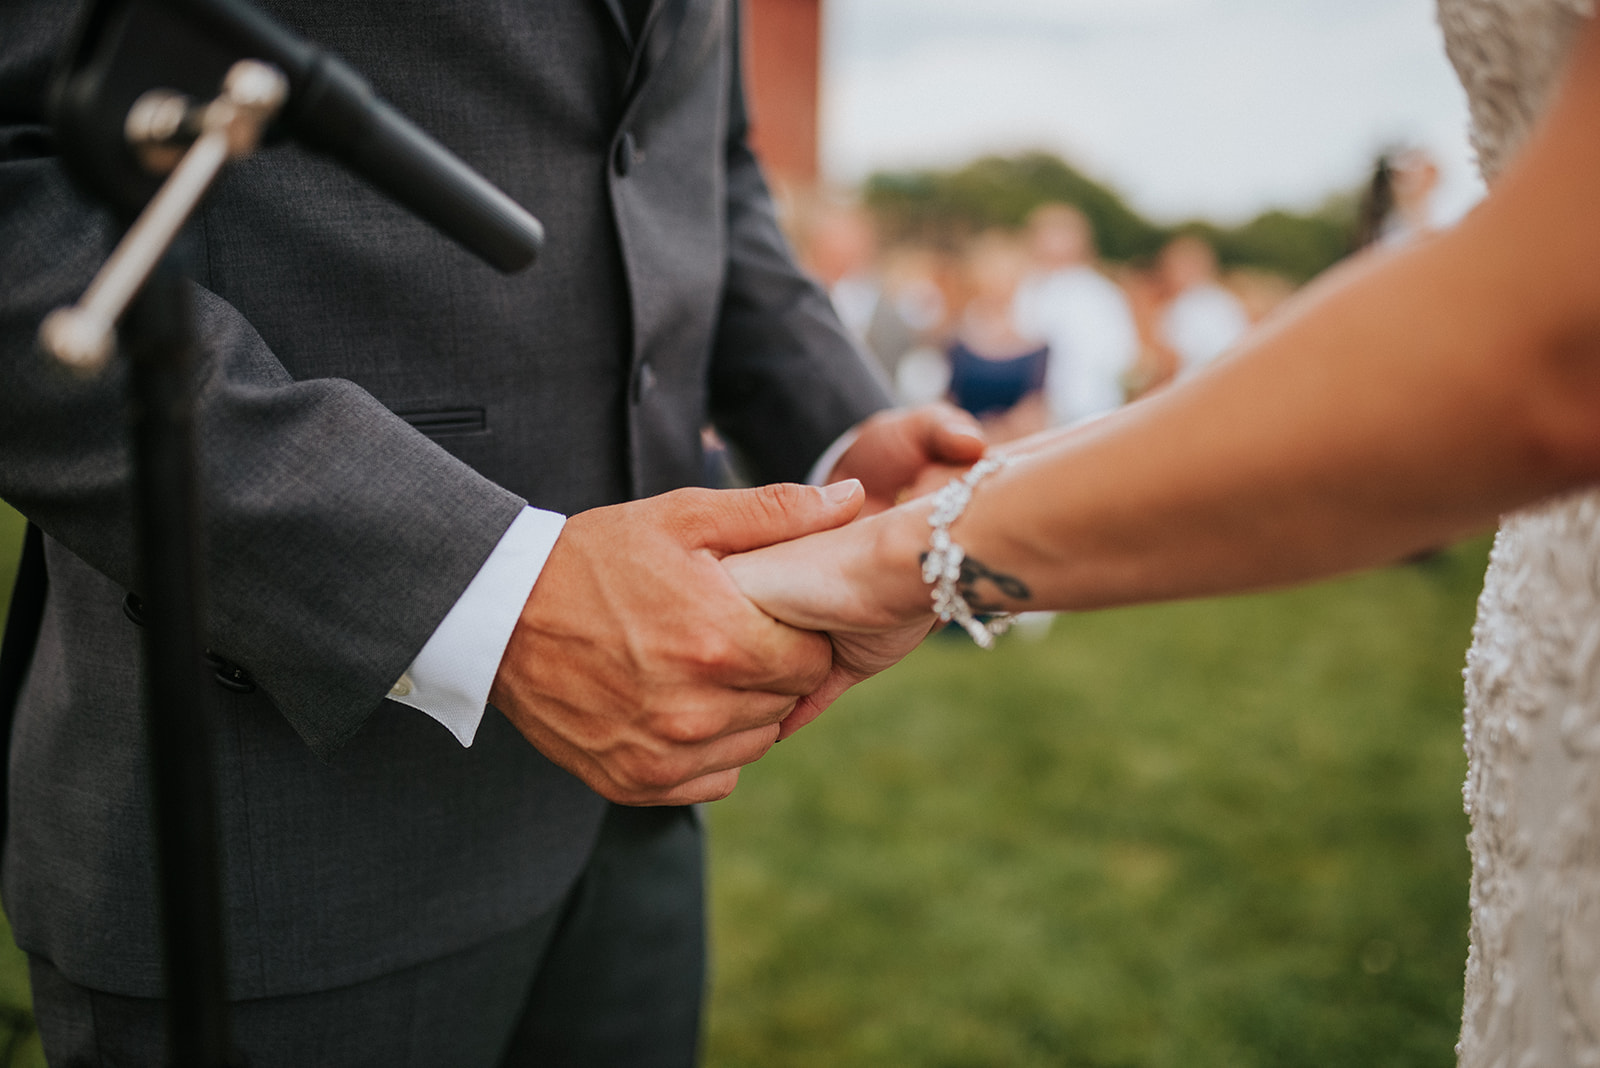 overthevineswisconsinwedding_0669.jpg